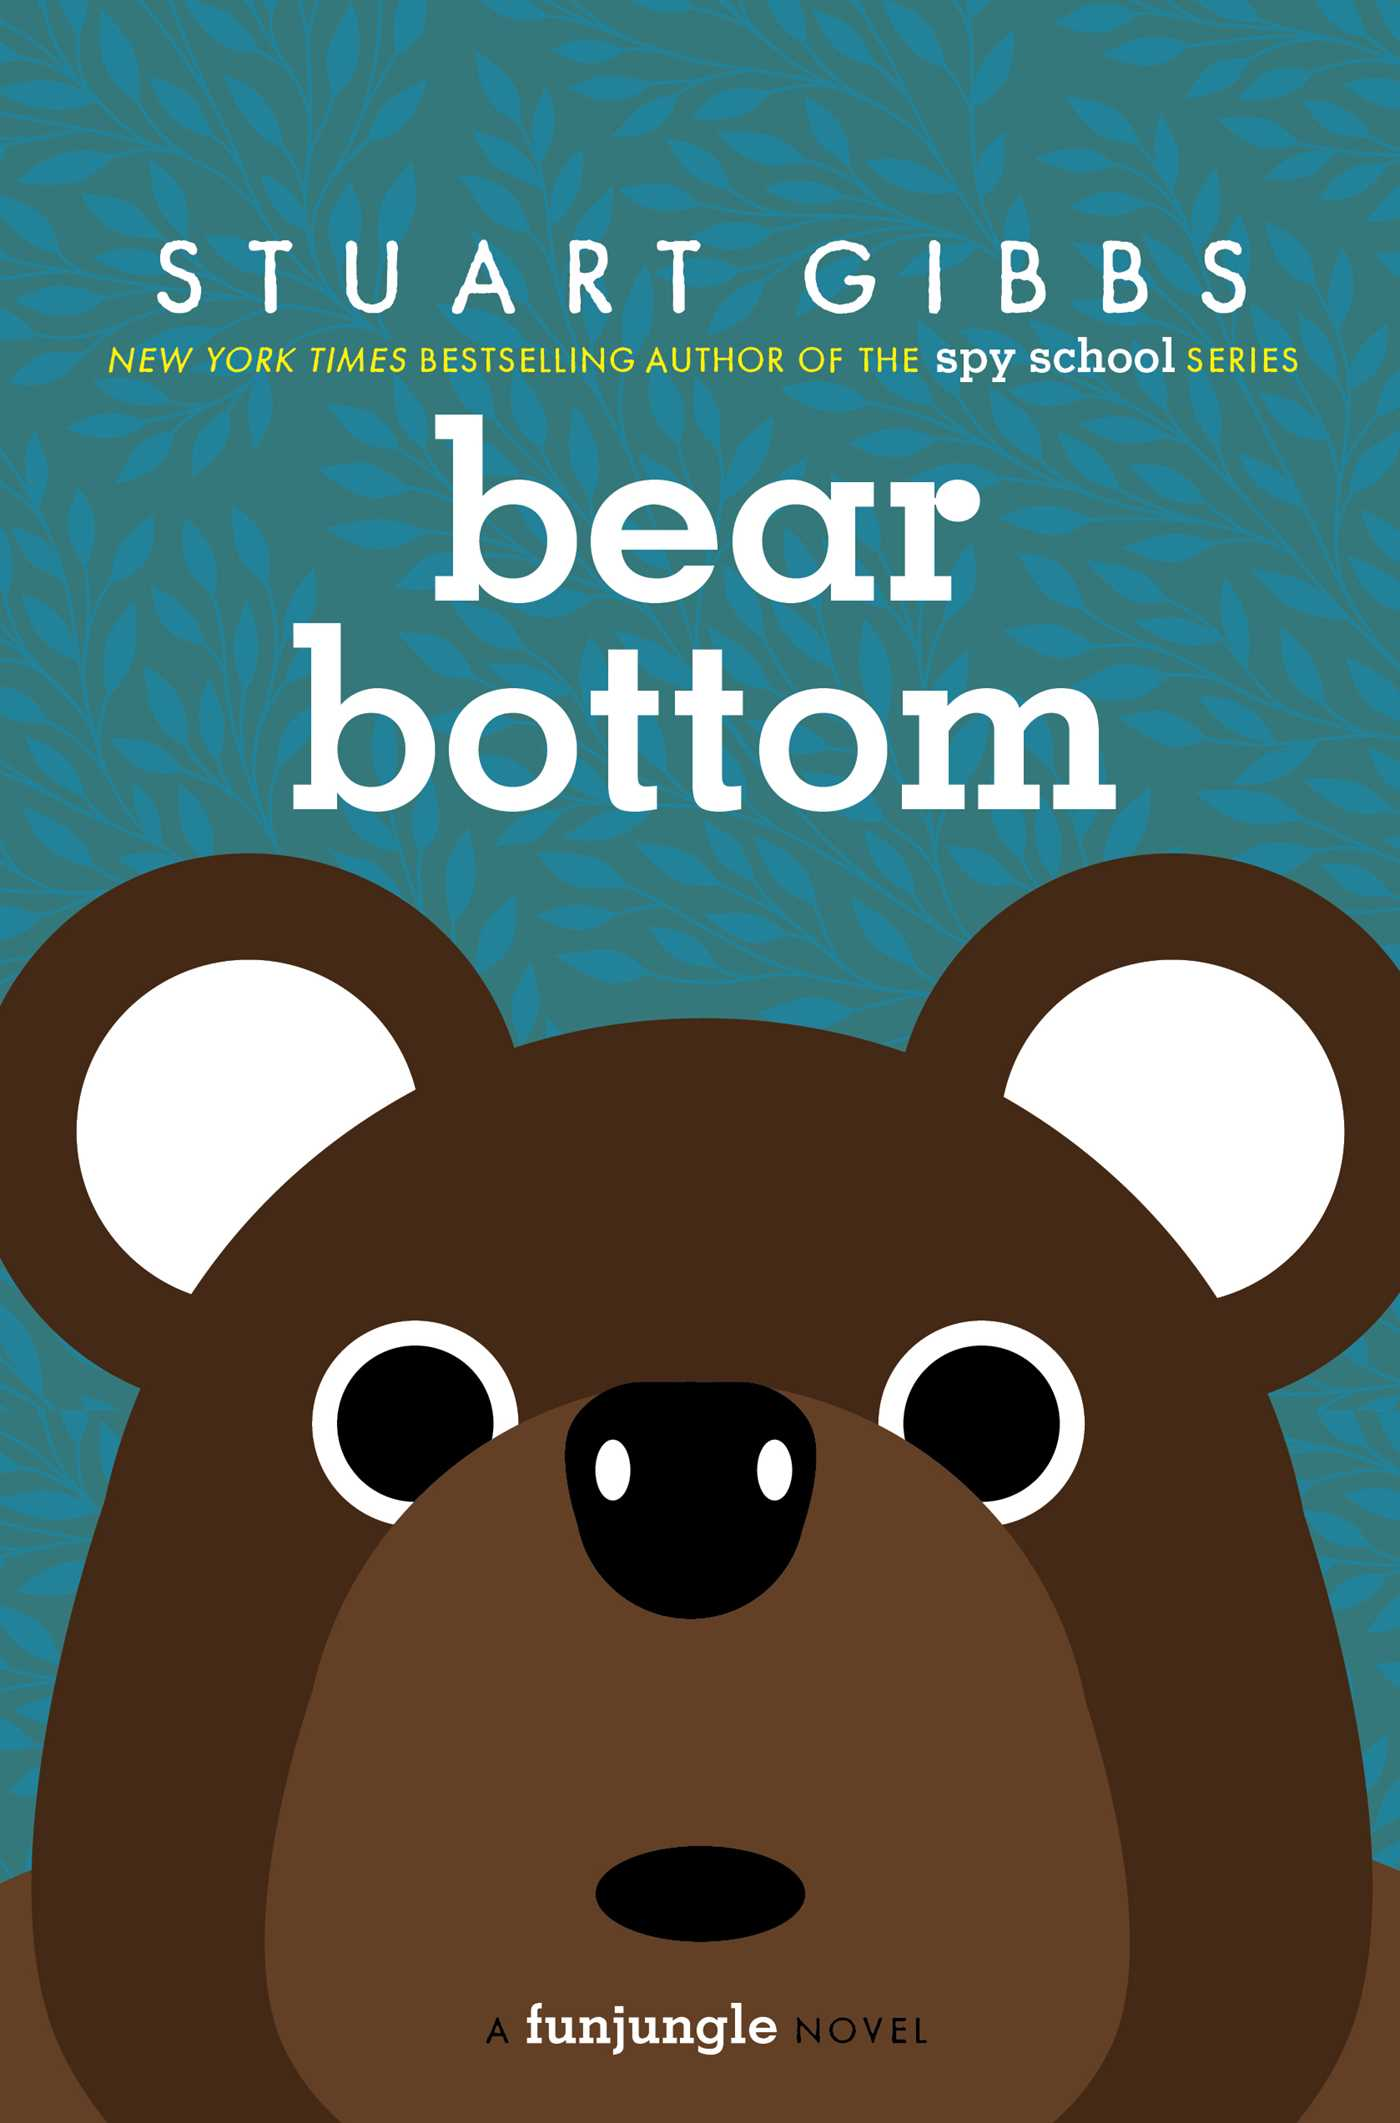 Bear Bottom